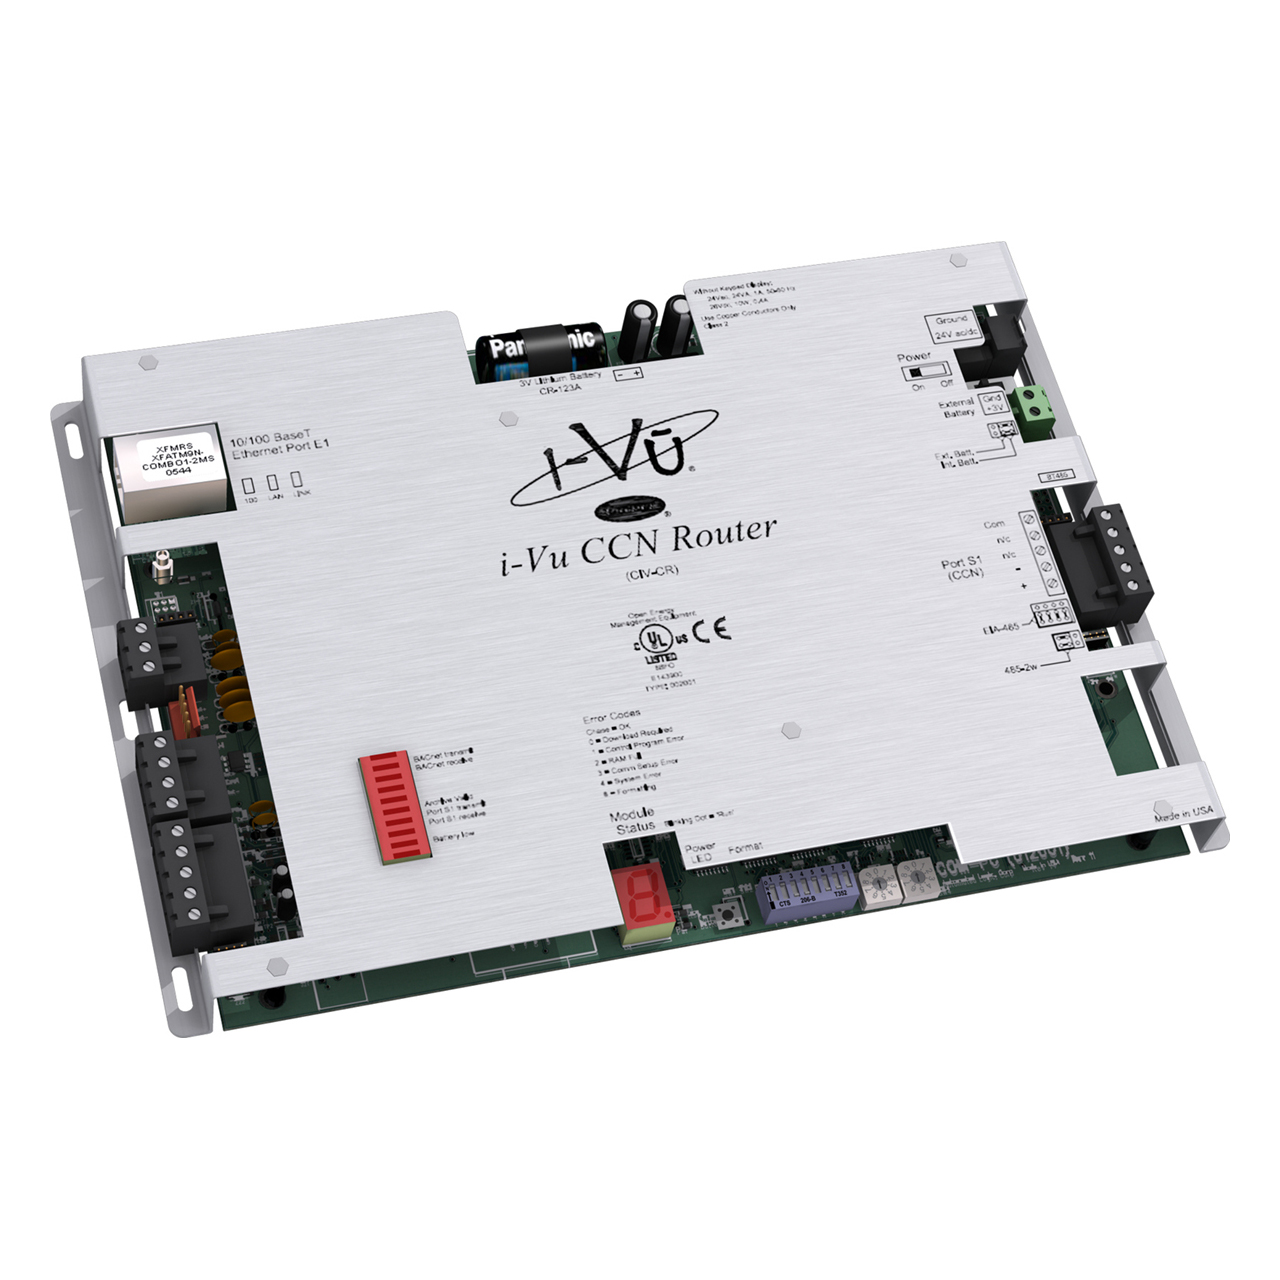 carrier-CIV-CR-network-and-integration-controller